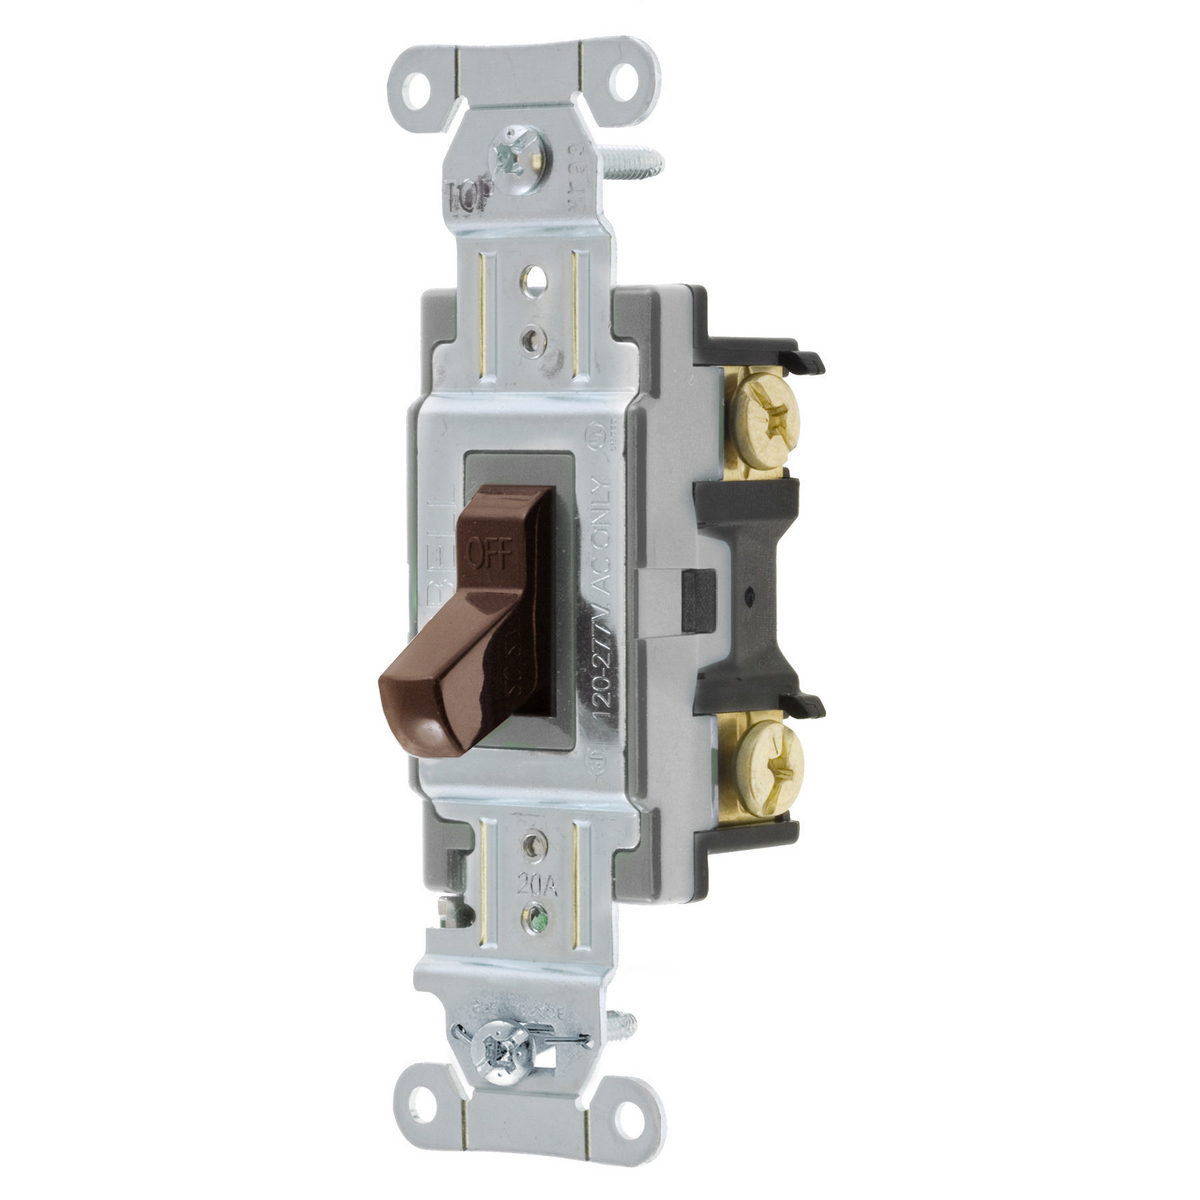 HUBCS120 SWITCH, SPEC, SP, 20A 120/277V, BR ,CS120, HUBBELL